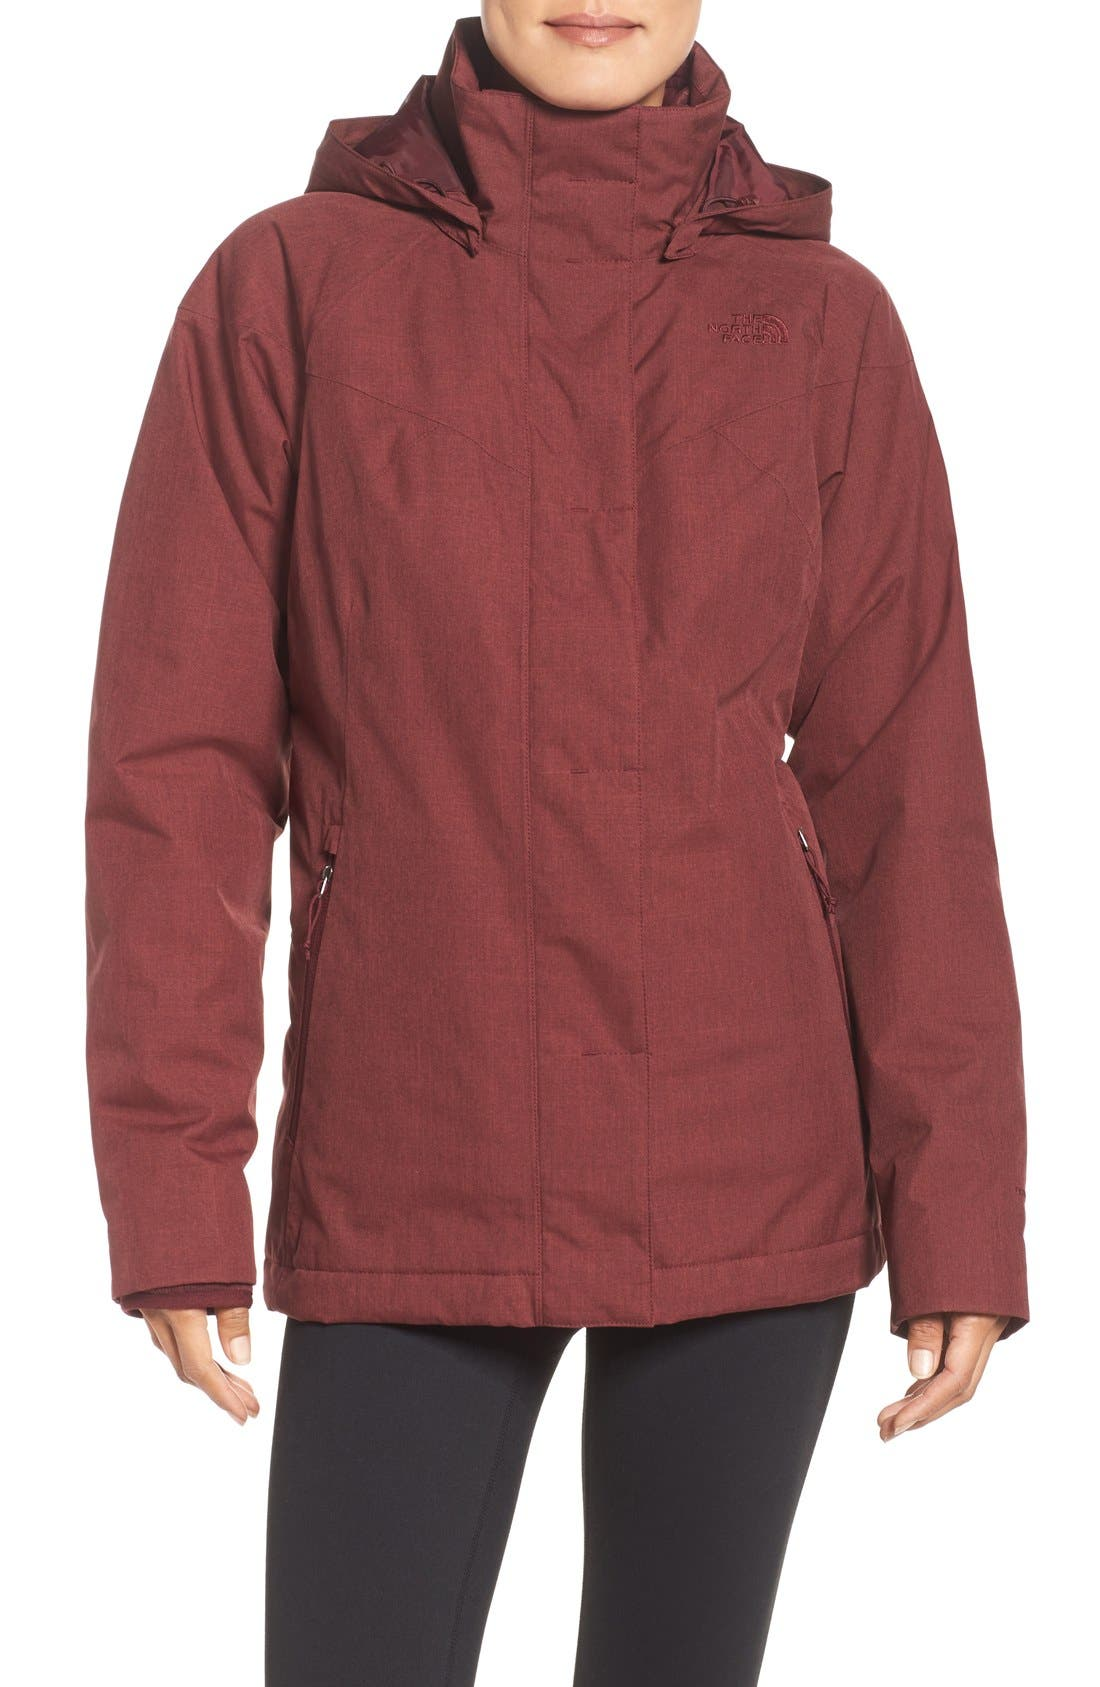 Alternate Image 1 Selected - The North Face 'Kalispell' TriClimate® 3-in-1 Jacket